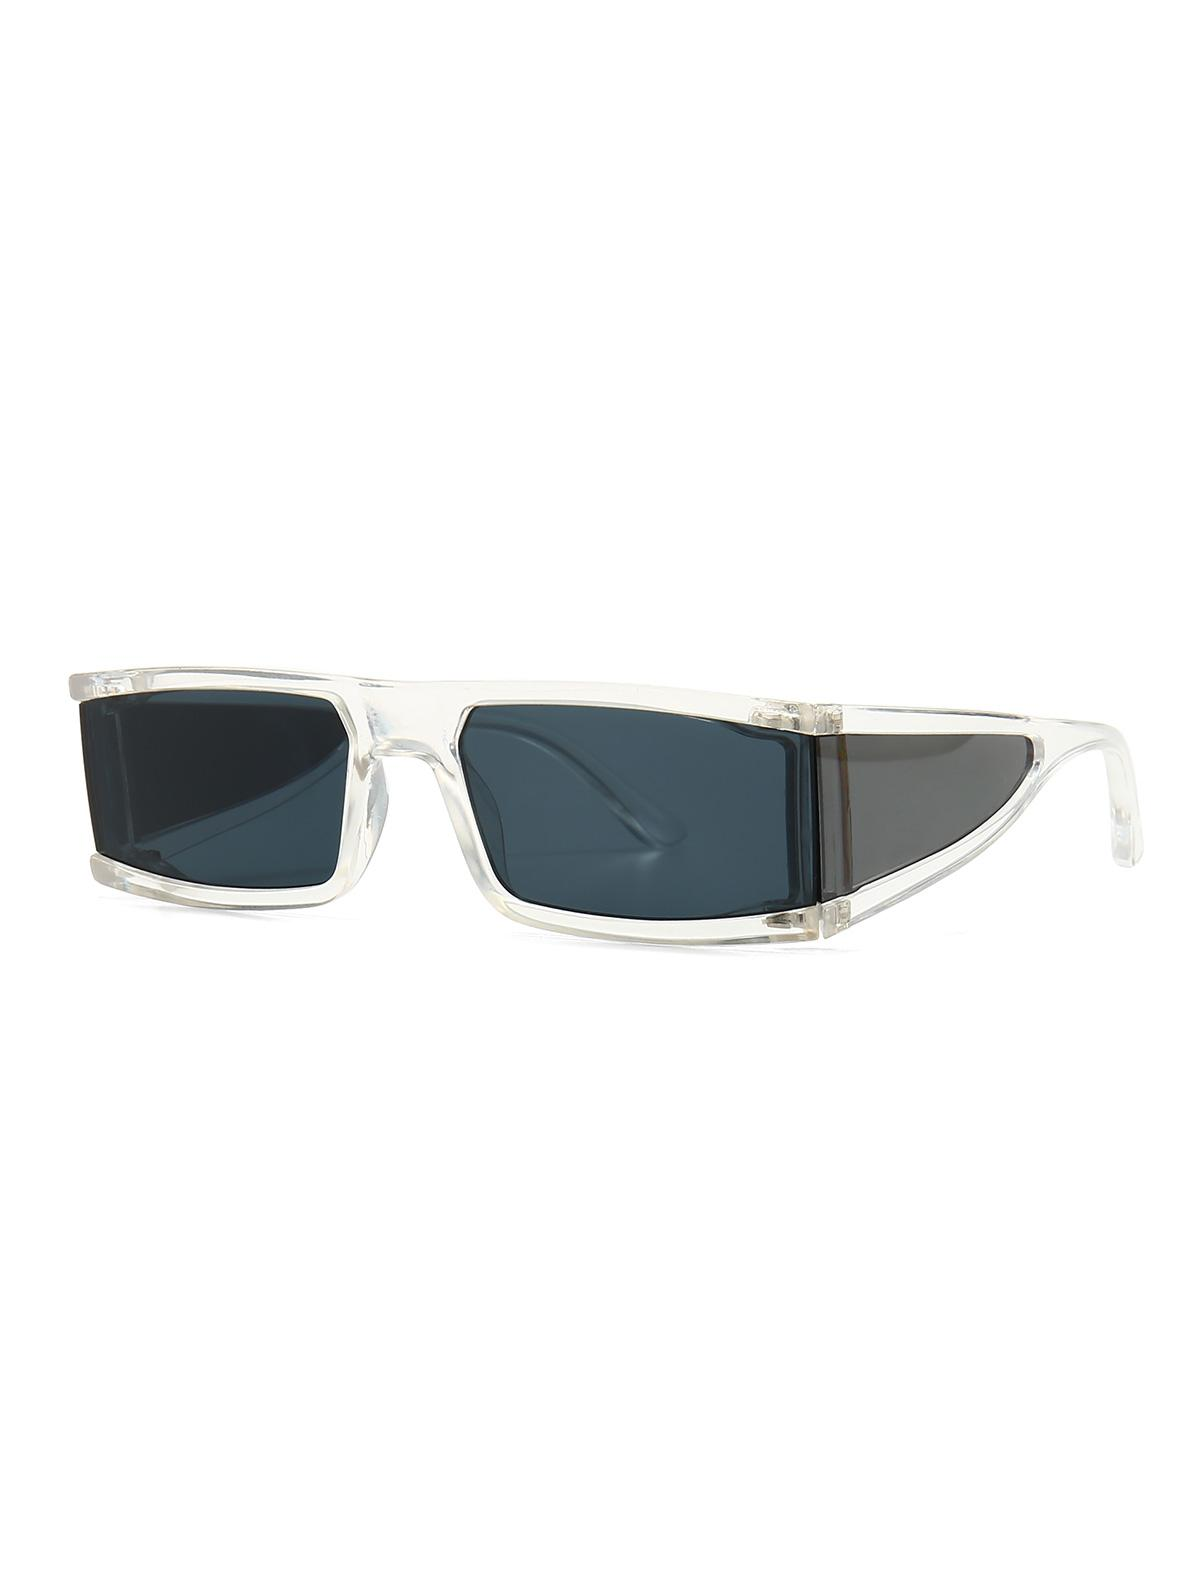 One-piece Outdoor Rectangle Sunglasses